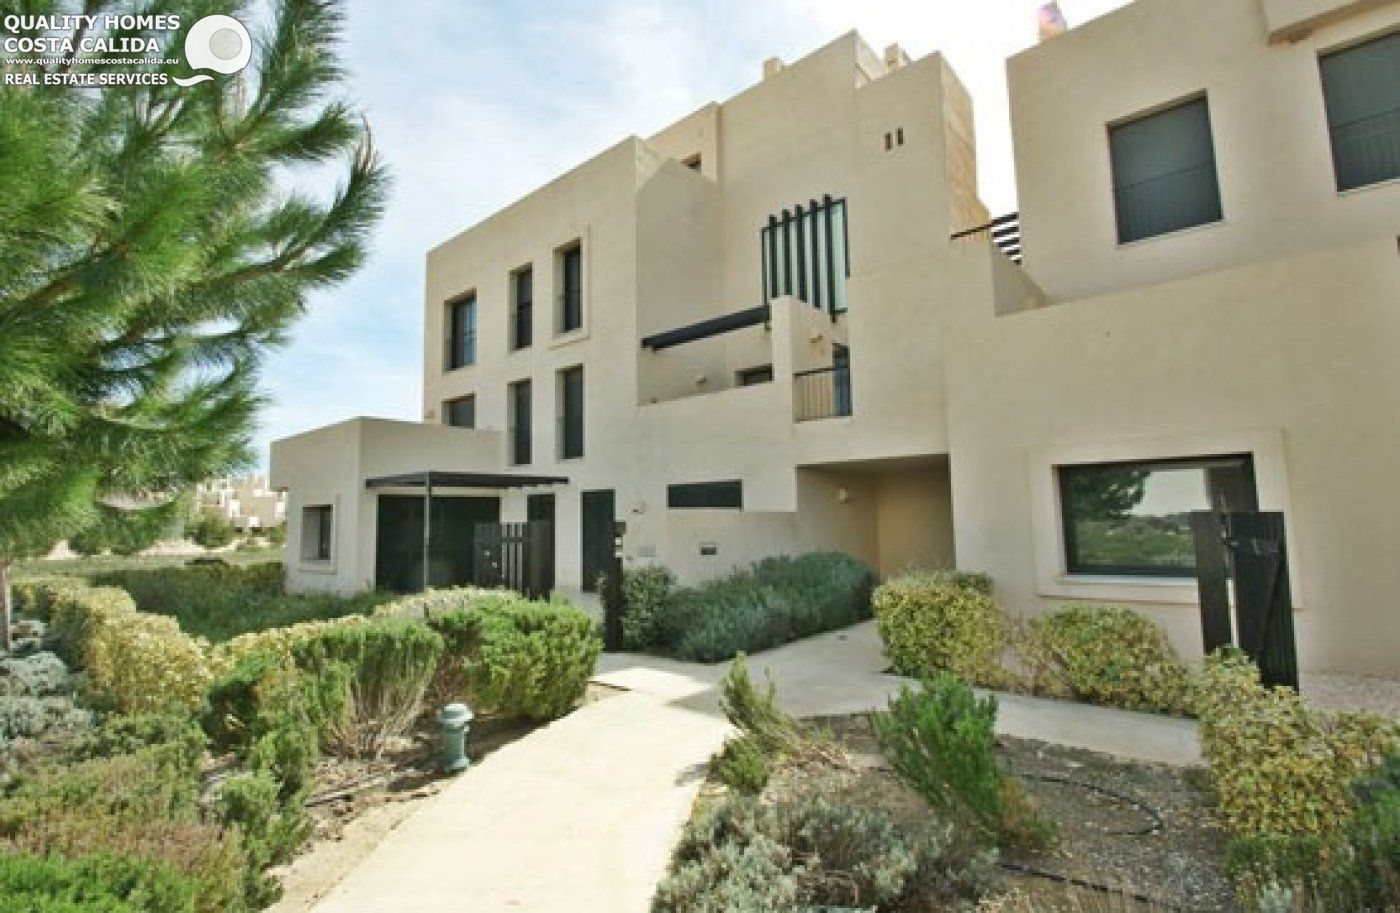 Gallery Image 2 of Maybe the best investment in the Murcia Region